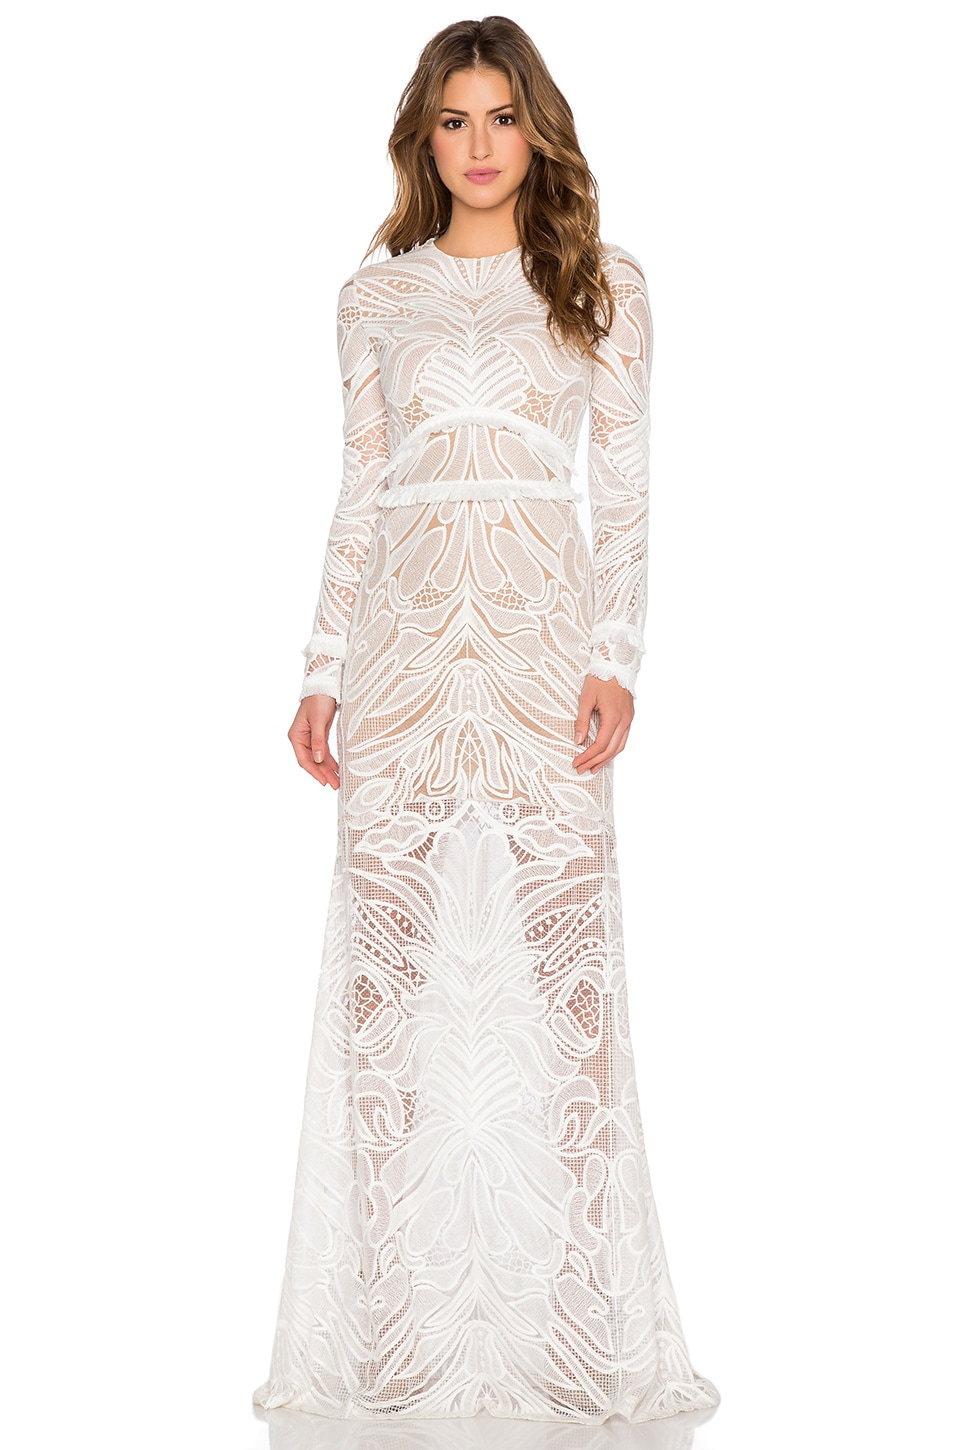 Alexis Vice Lace Maxi Dress in White Lace - REVOLVE